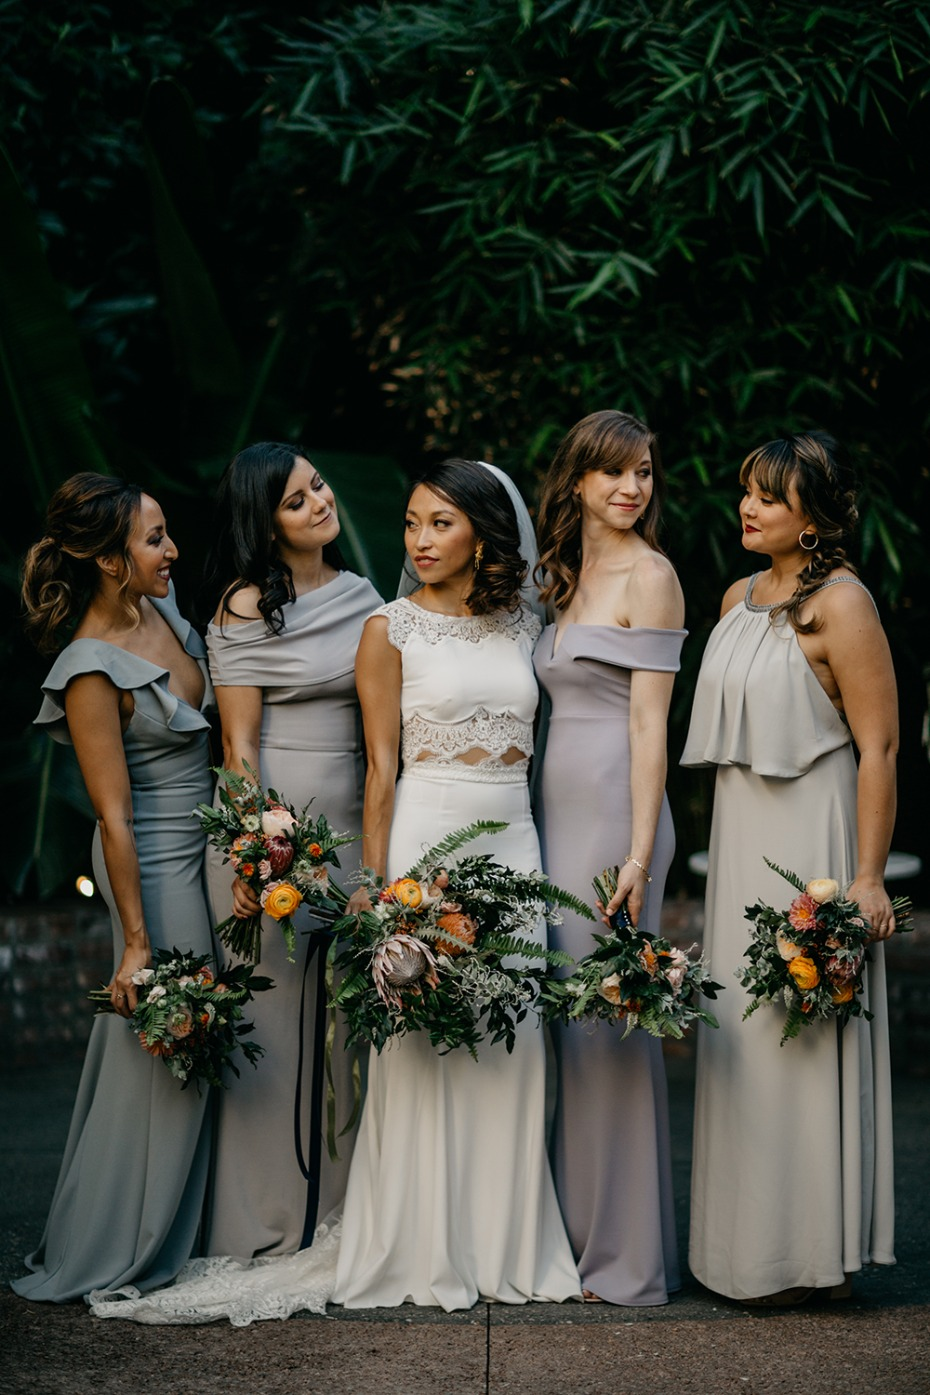 Bridesmaids in neutral tones